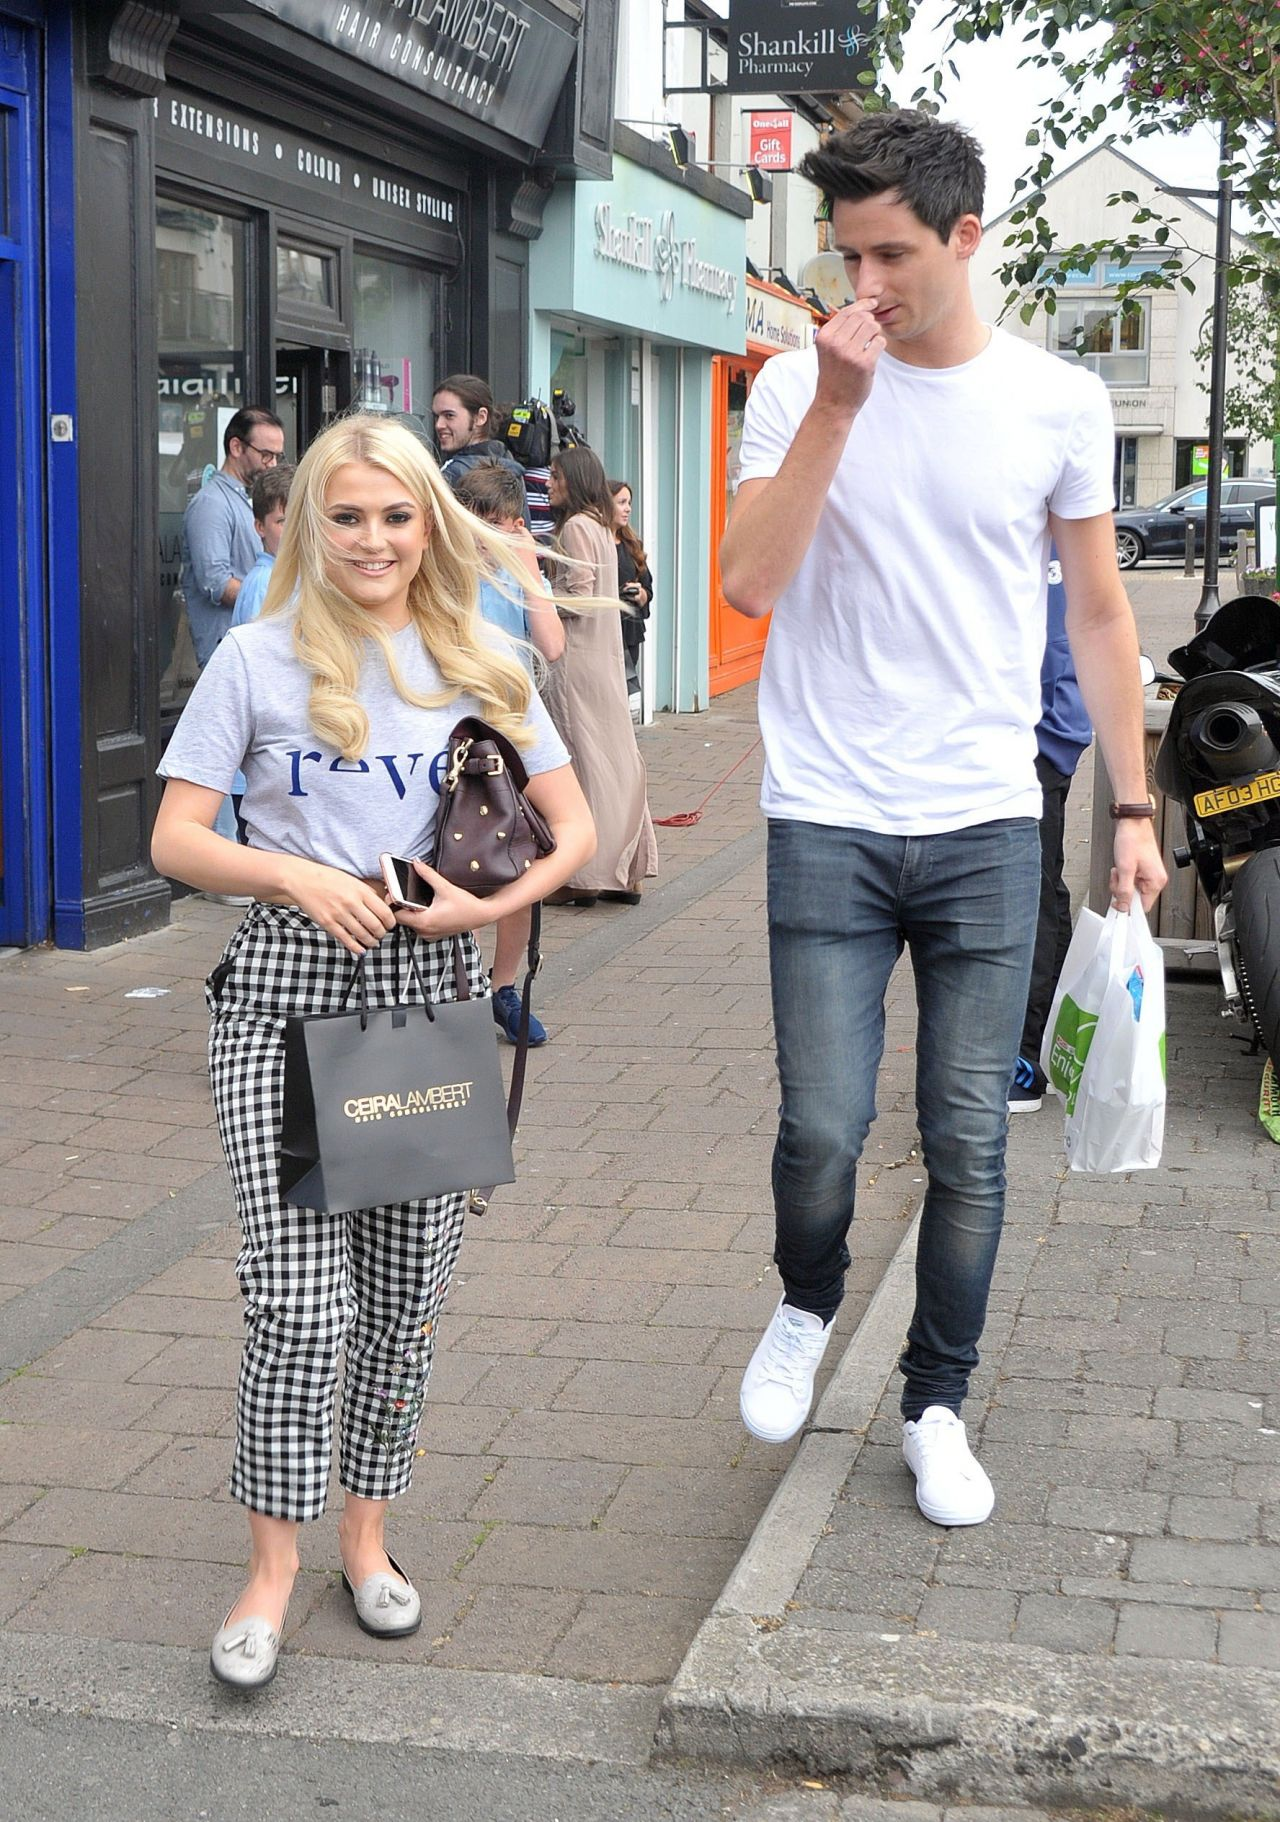 lucy-fallon-cute-style-at-ceira-lamberts-hair-salon-in-shankill-village-dublin-06-17-2017-12.jpg (1280×1822)